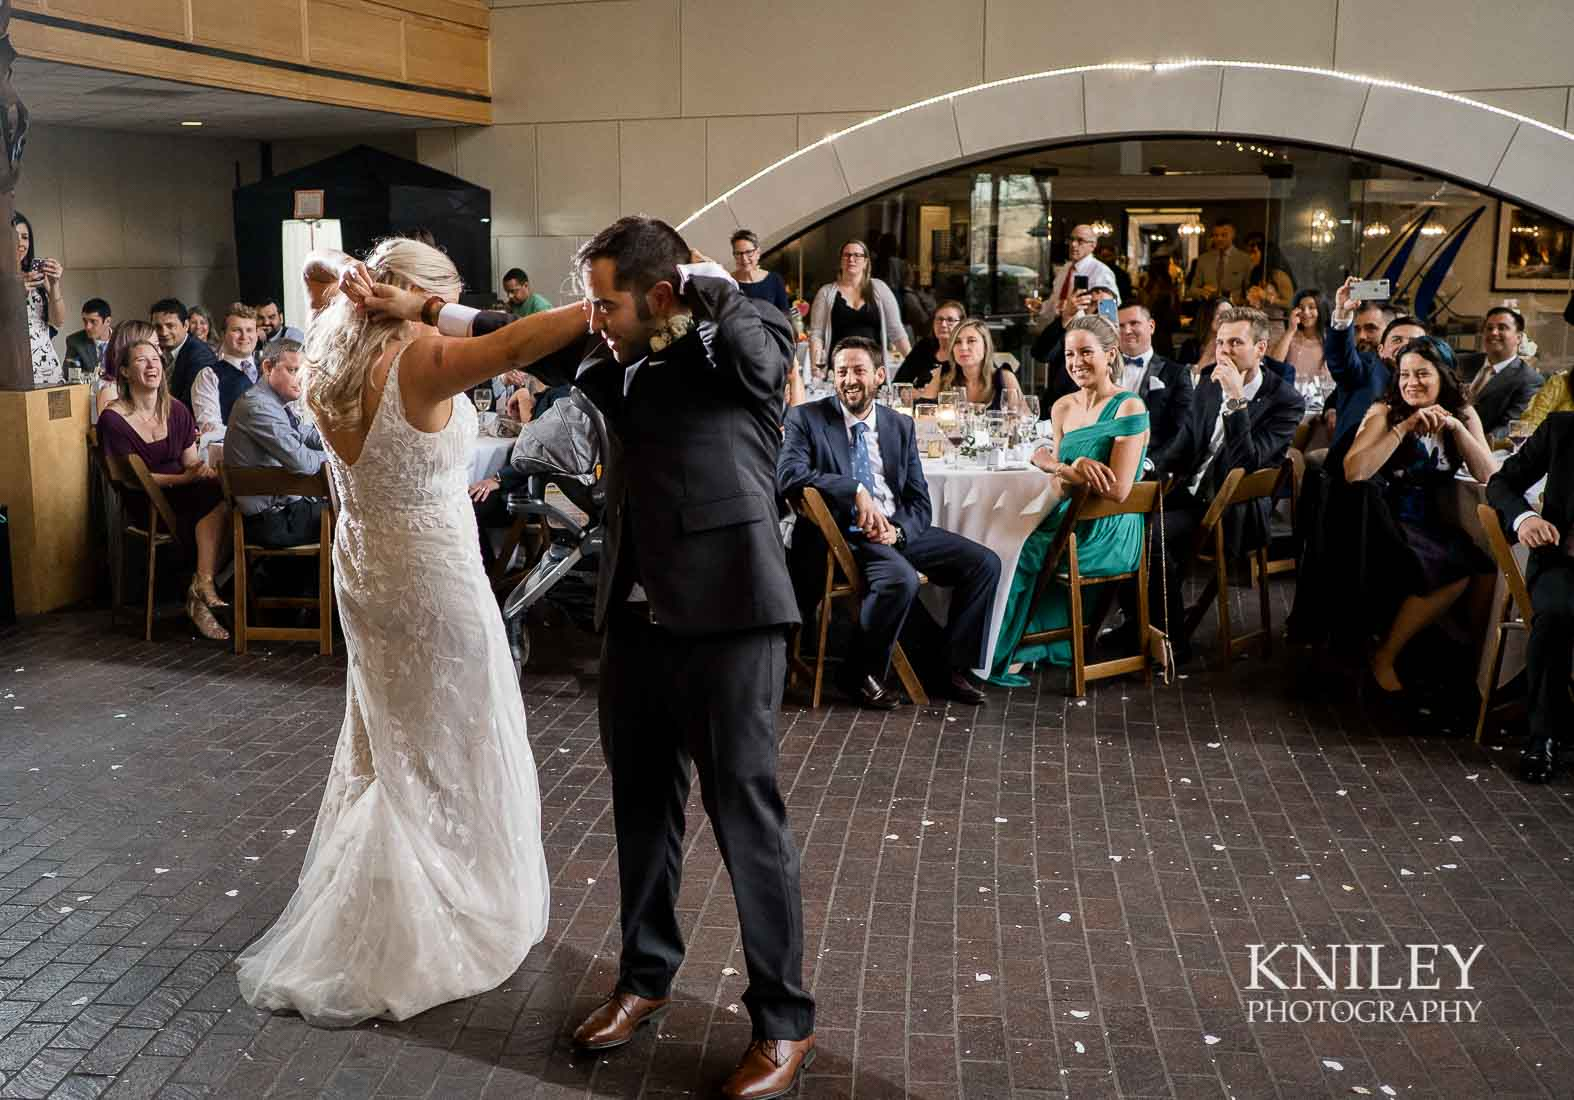 60-Max-of-Eastman-Wedding-and-Reception-Rochester-NY-Kniley-Photography.jpg